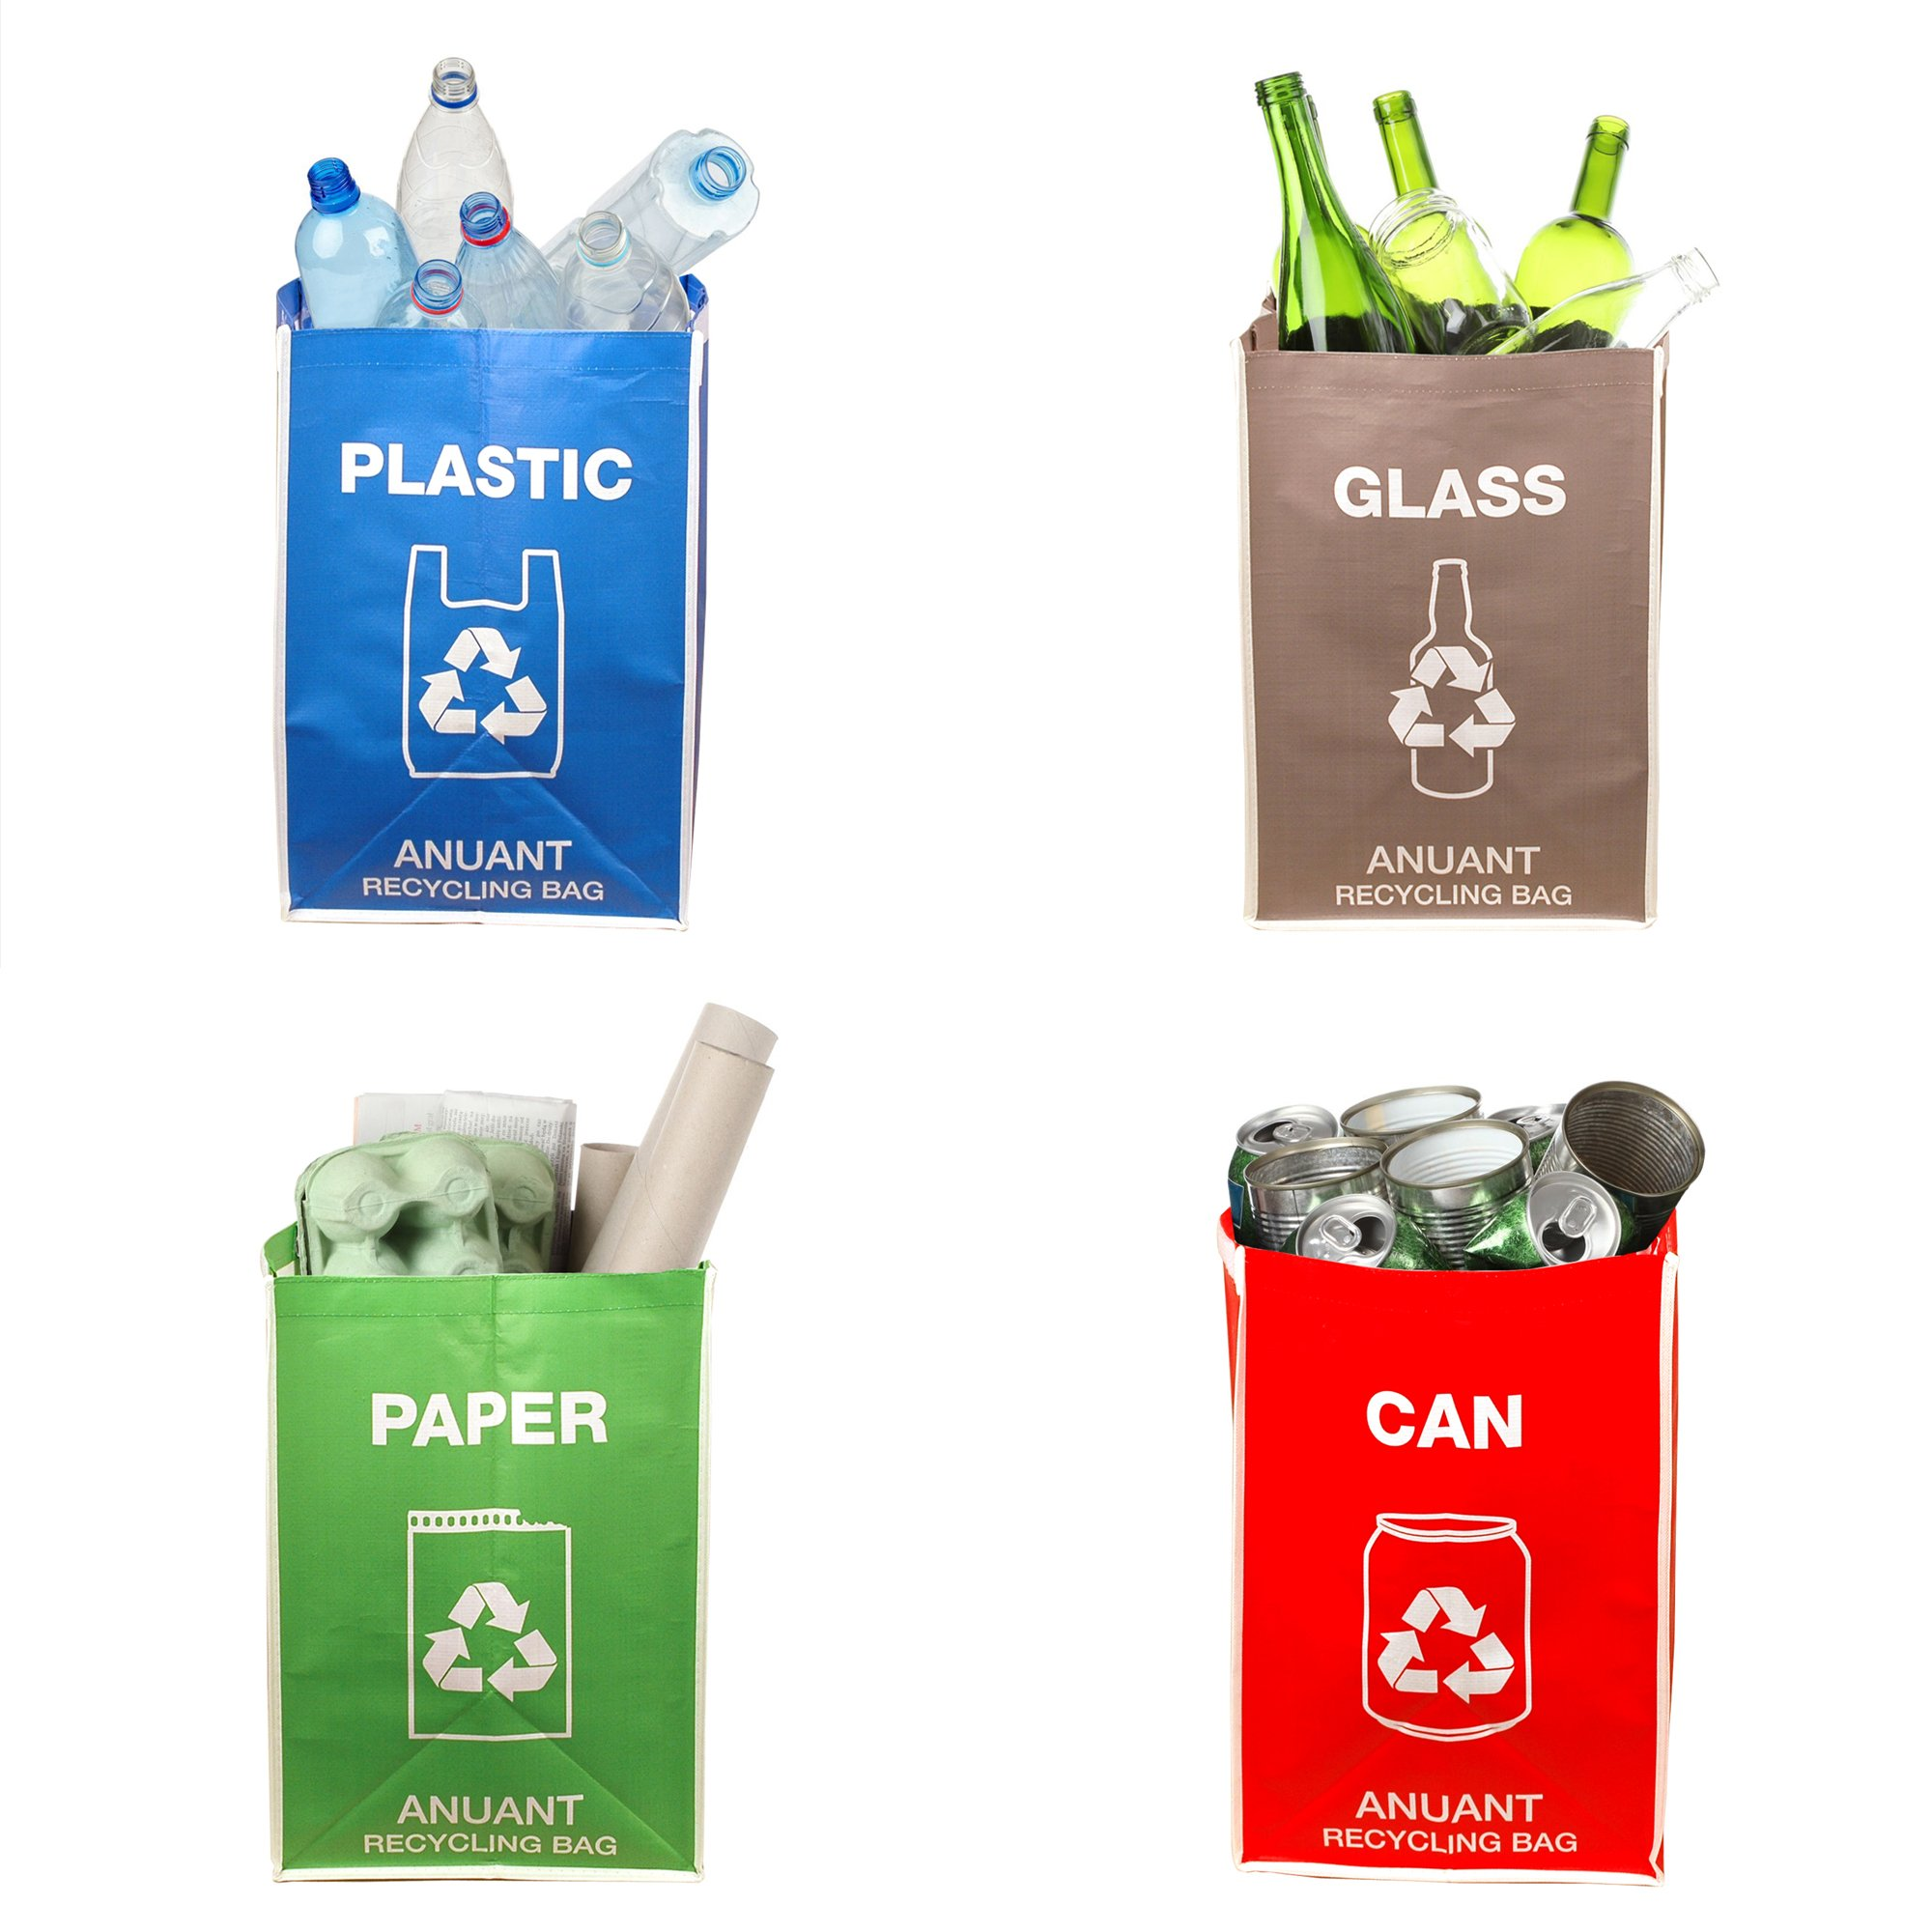 Separate Recycling Waste Bin Bags for Kitchen Office in Home - Recycle Garbage Trash Sorting Bins Organizer Waterproof Baskets Compartment Container Big Size 4 Bags Set by ANUANT (Image #4)